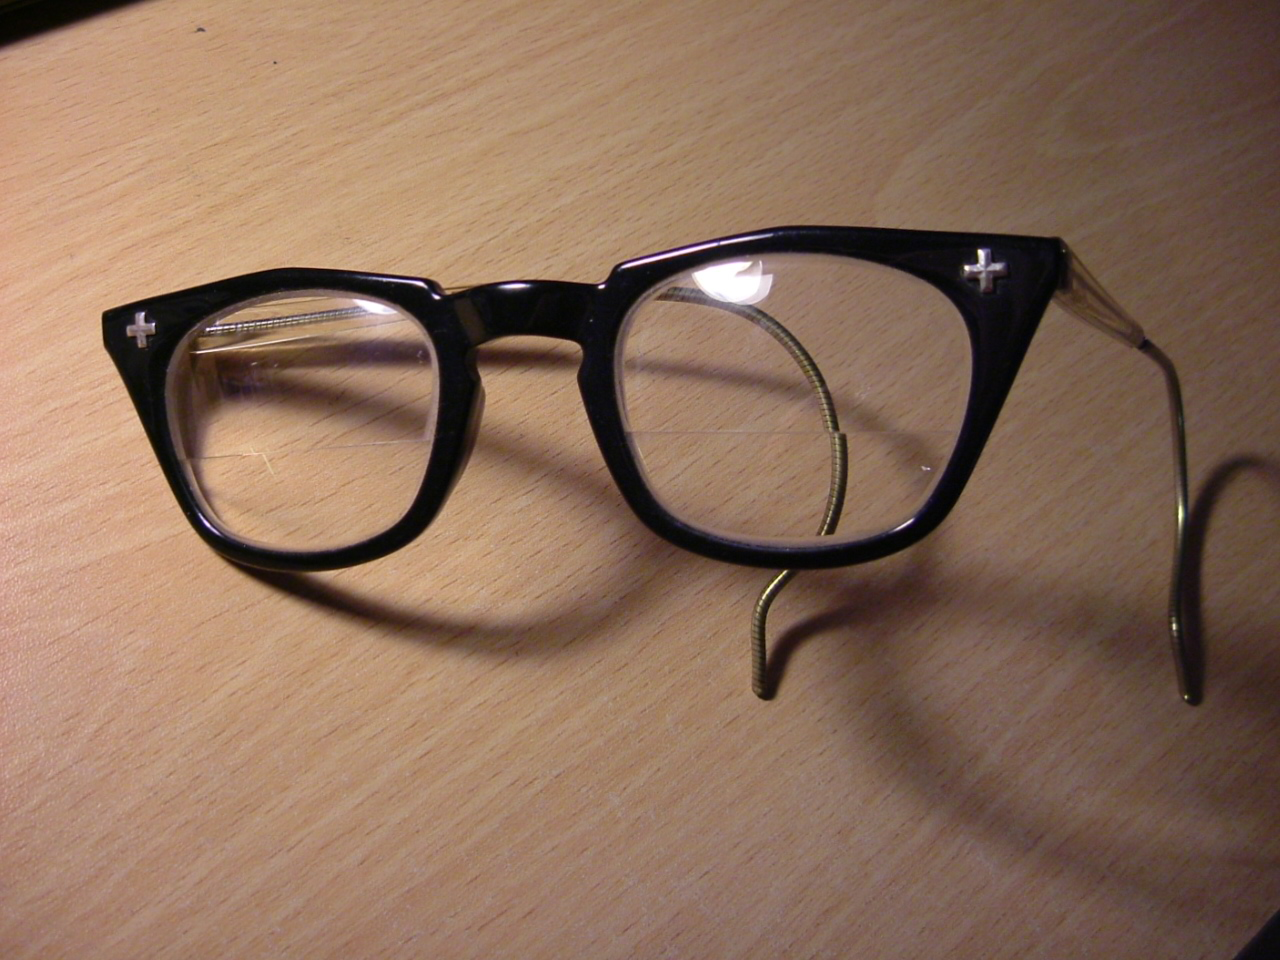 456c109731e ... and Lomb safety glasses (bifocal). Scored these on ebay a week or so  ago